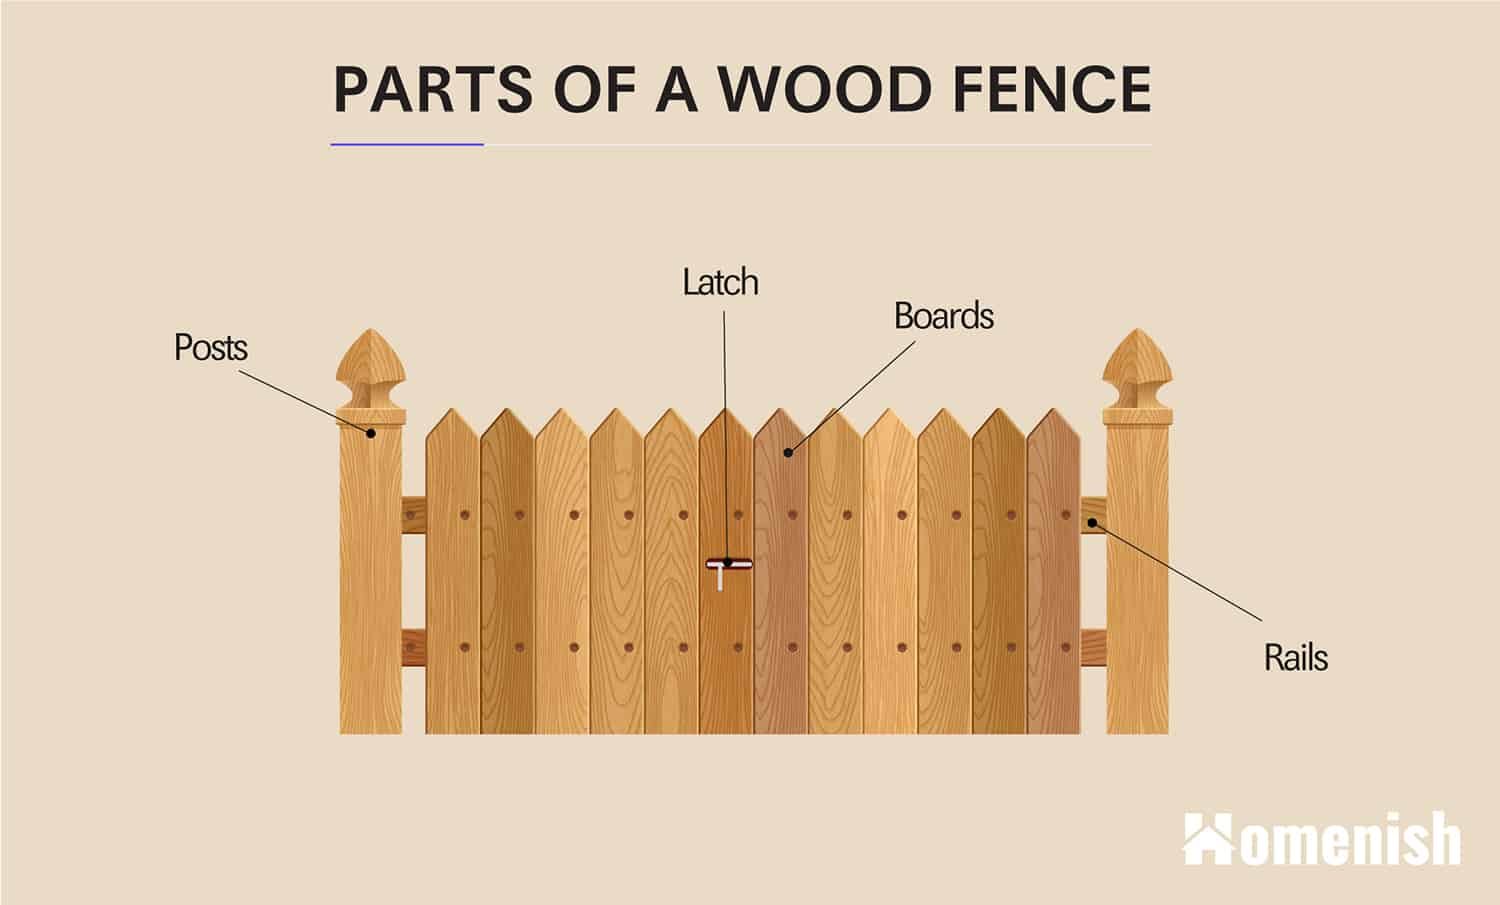 Parts of a Wood Fence